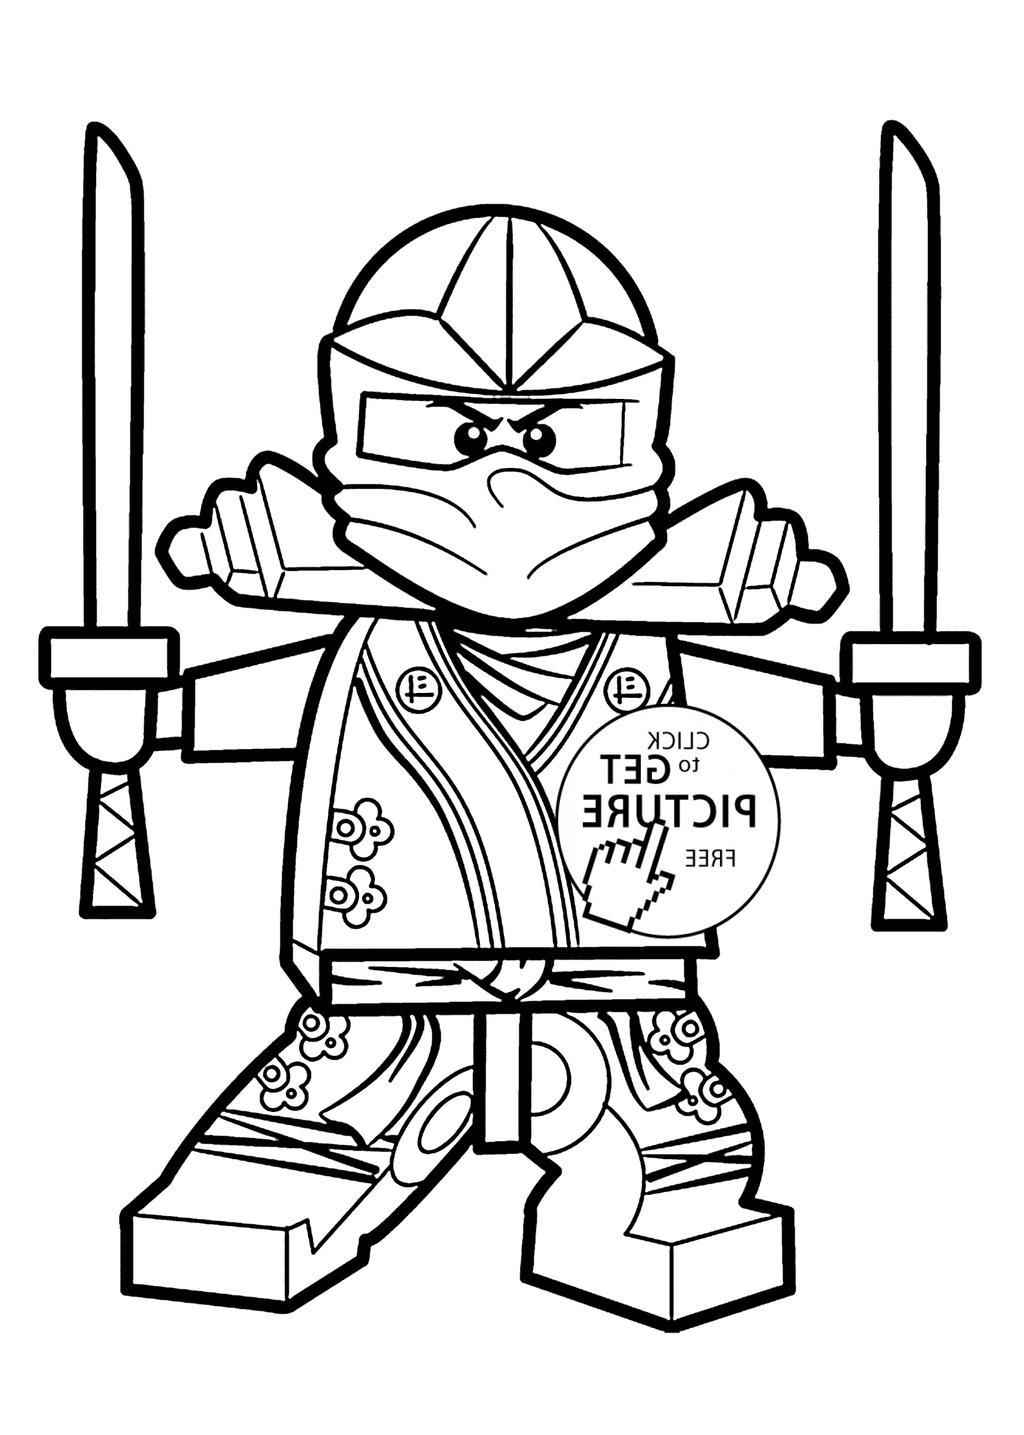 Ninja Drawing For Kids   Free download on ClipArtMag